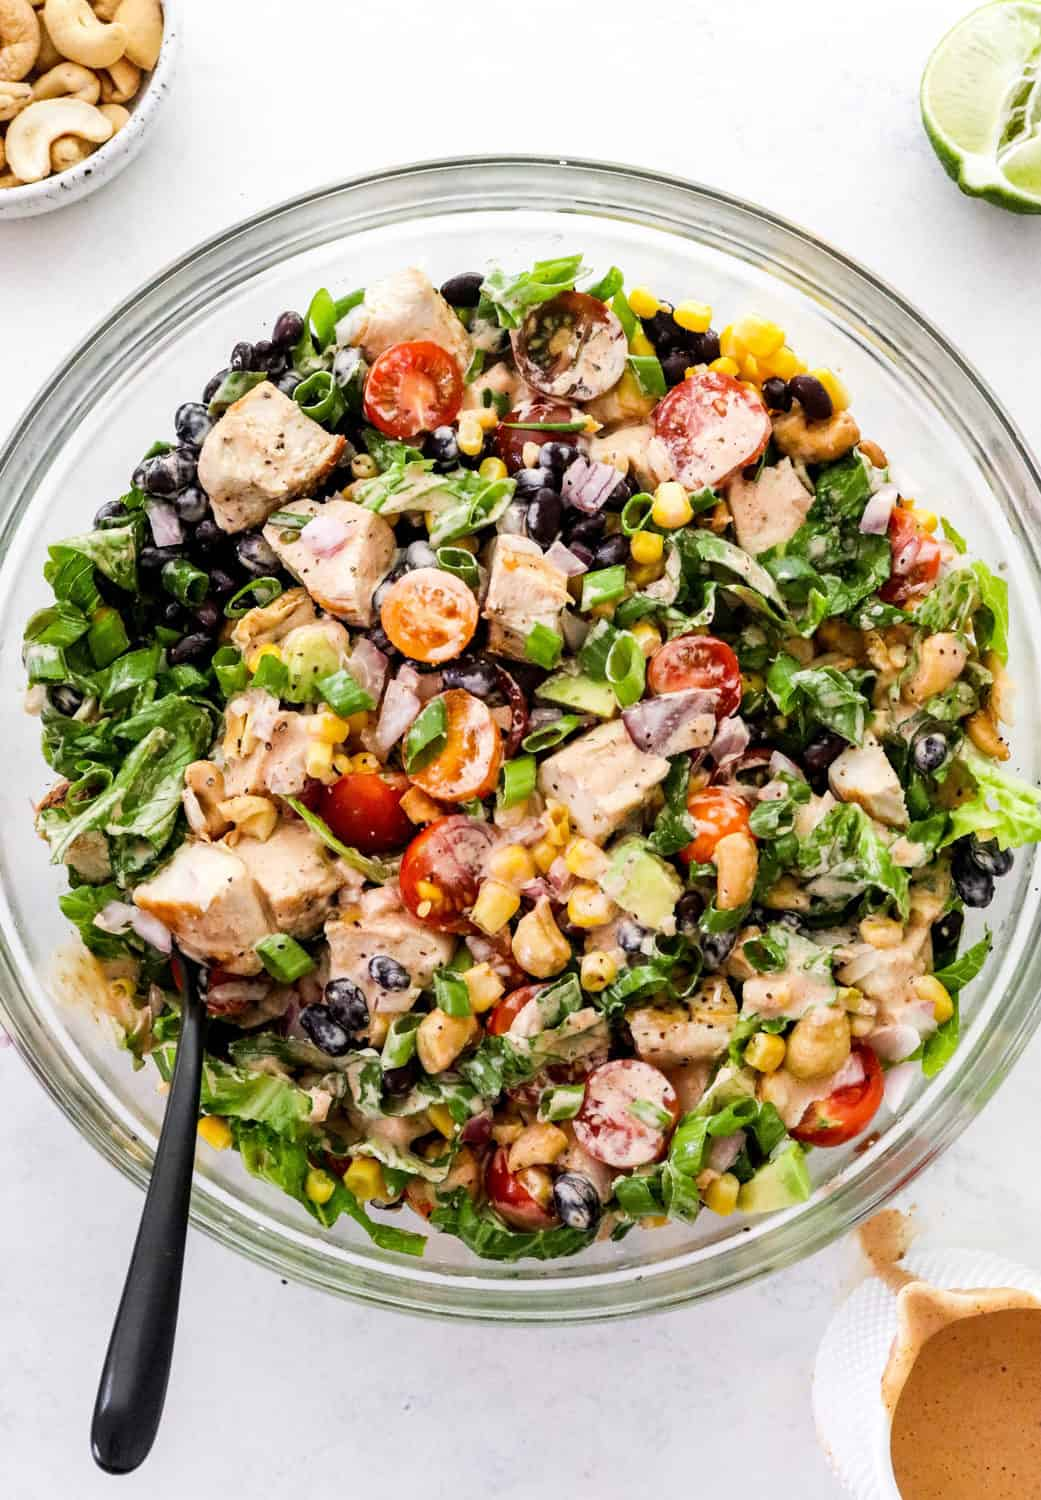 Glass round mixing bowl filled with green romaine lettuce, corn, sliced tomatoes, black beans and diced cooked chicken topped with a drizzled with a creamy pale orange dressing with a black spoon in the bowl.